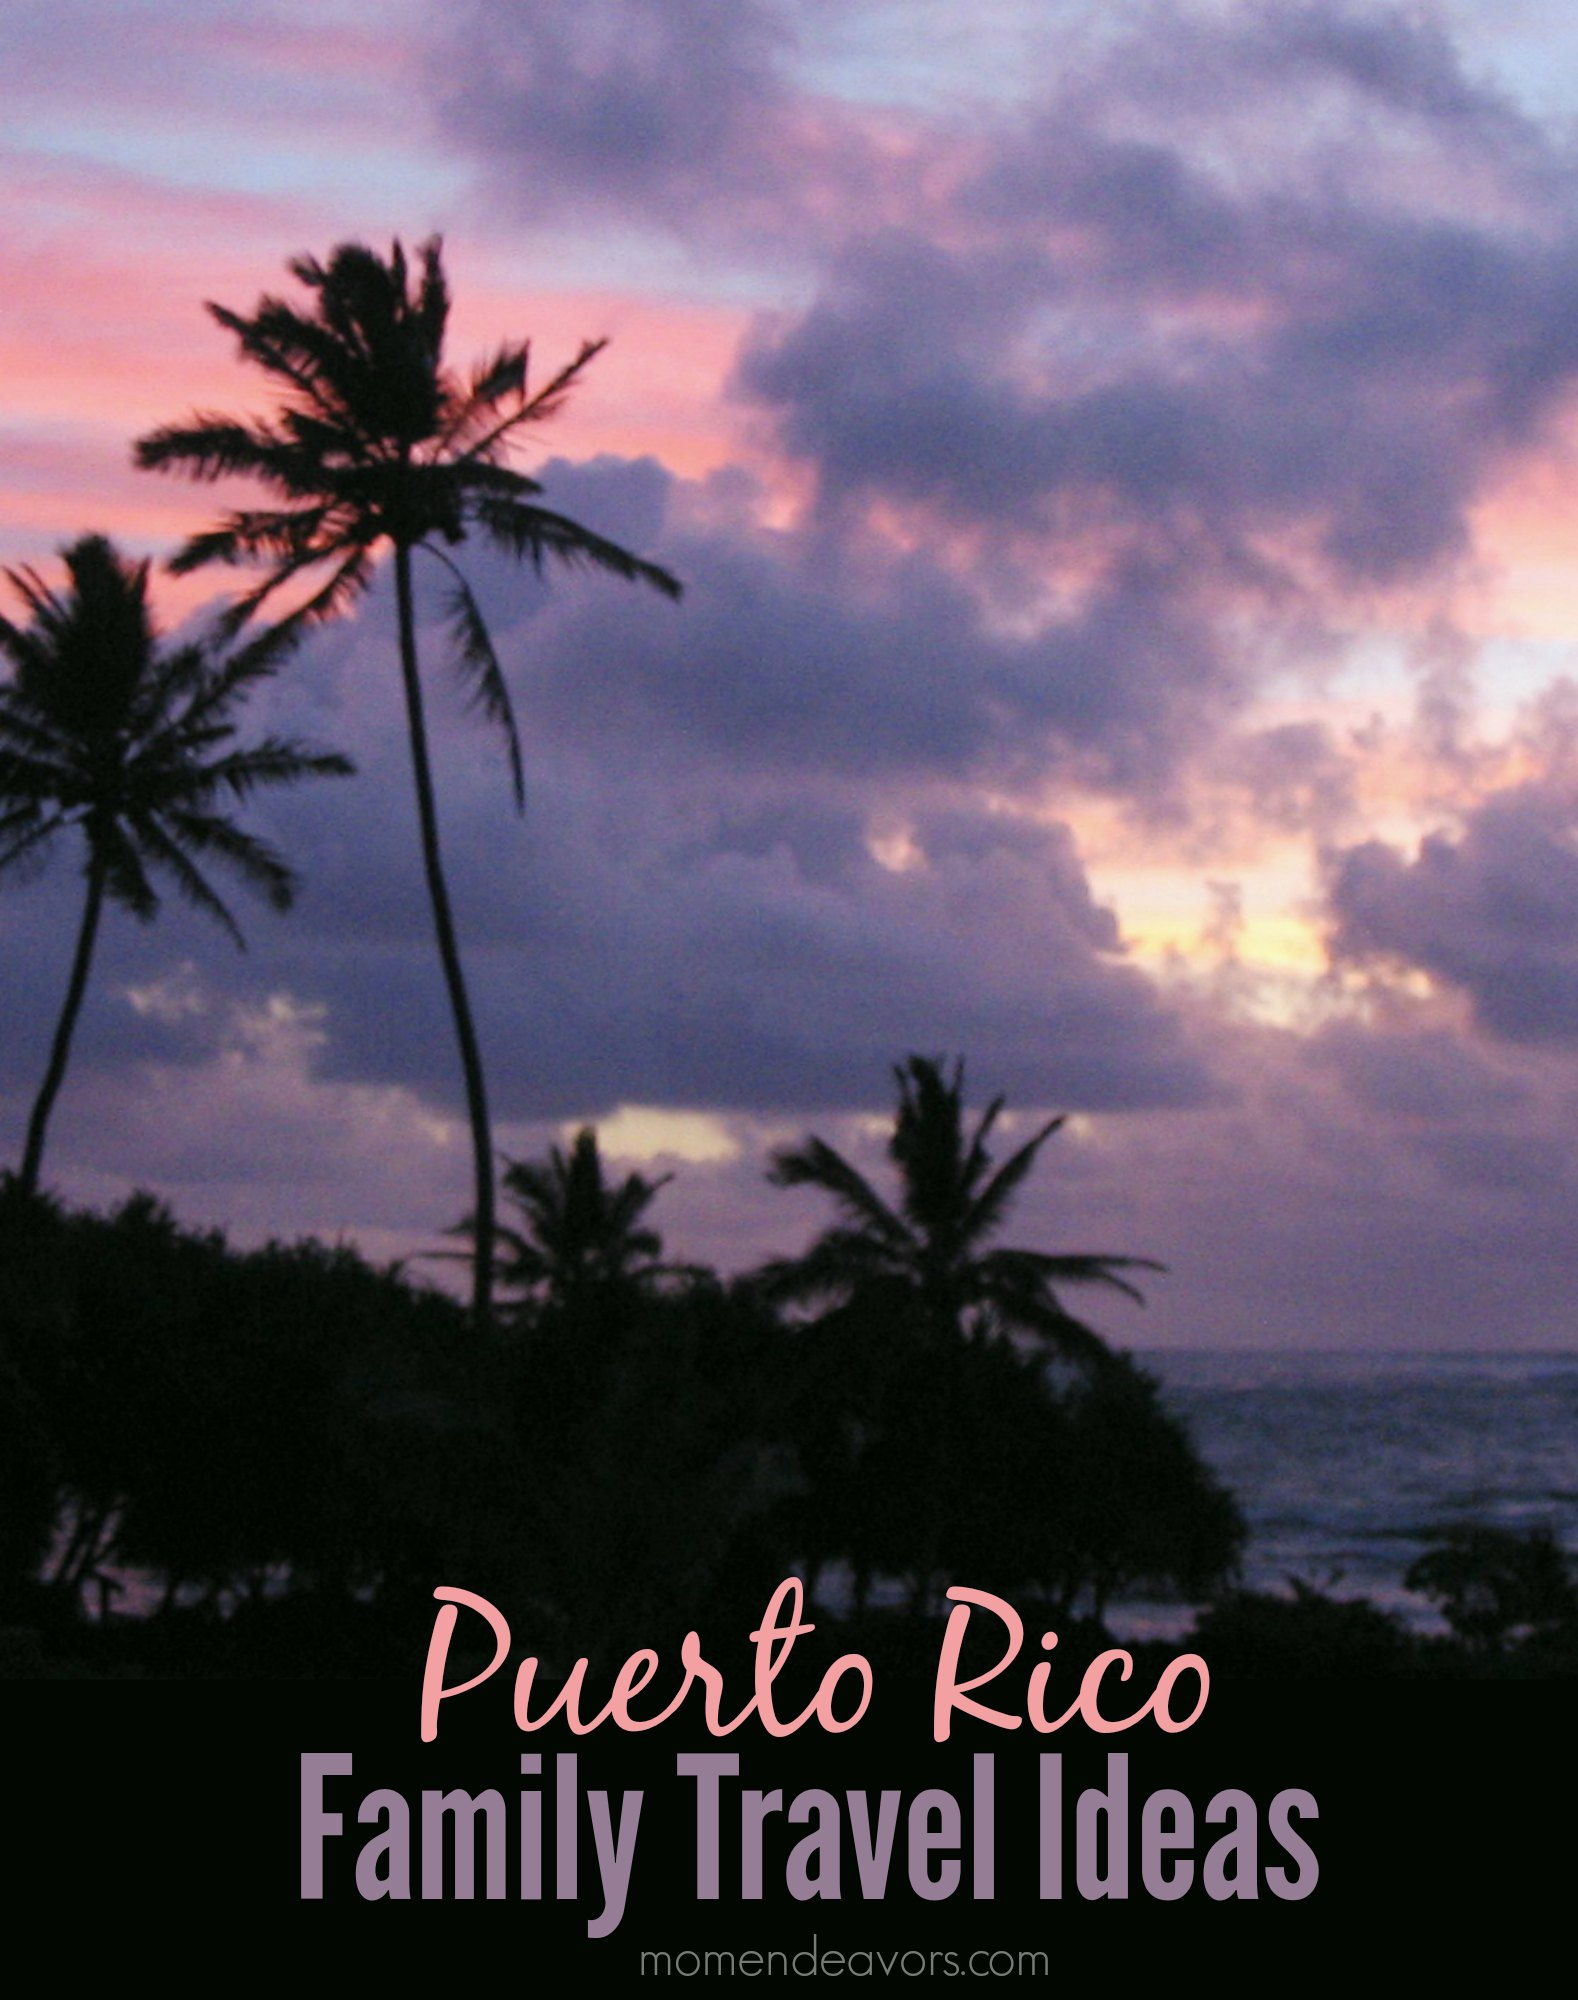 Puerto Rico Family Travel Ideas